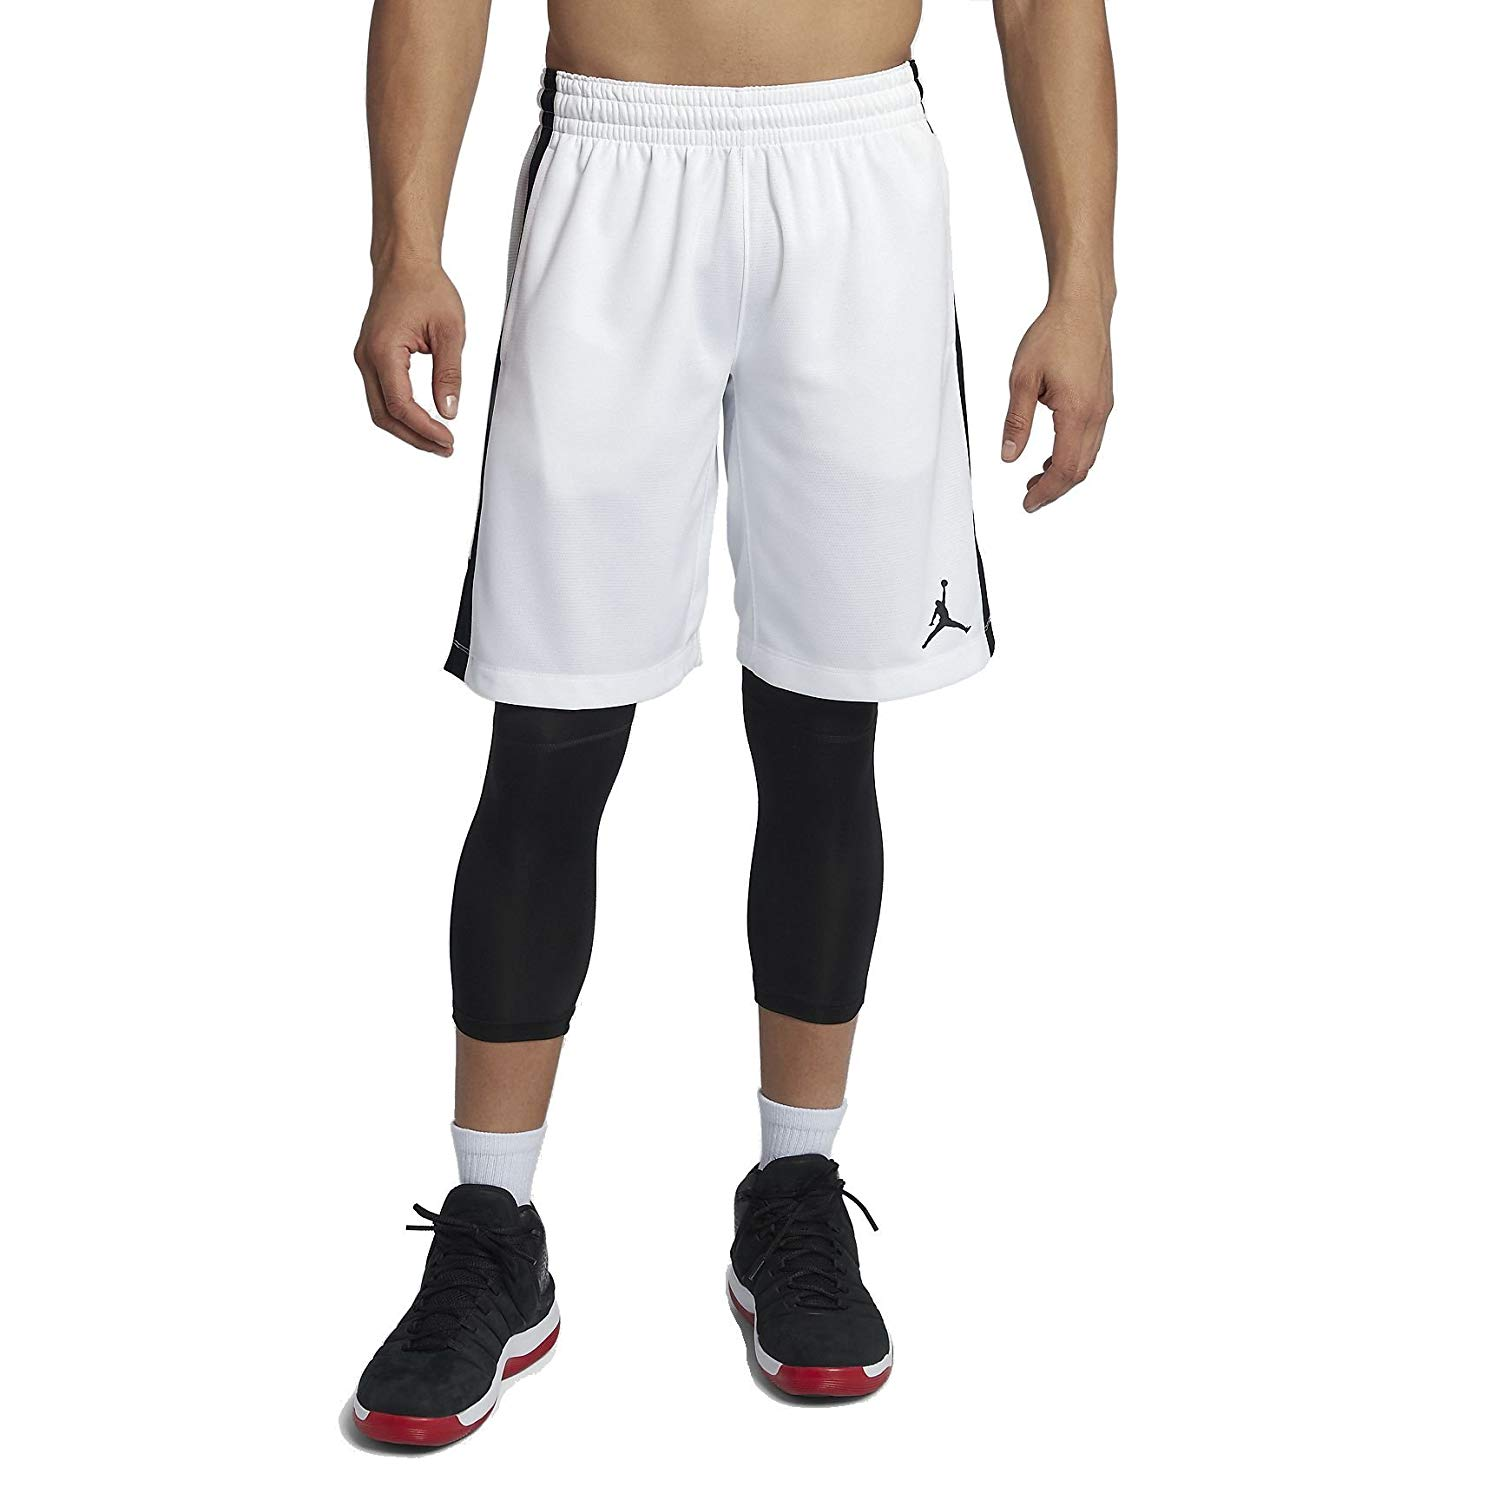 a6fd662a23e Get Quotations · Jordan Flight Men's Basketball Shorts (White/Black, Medium)